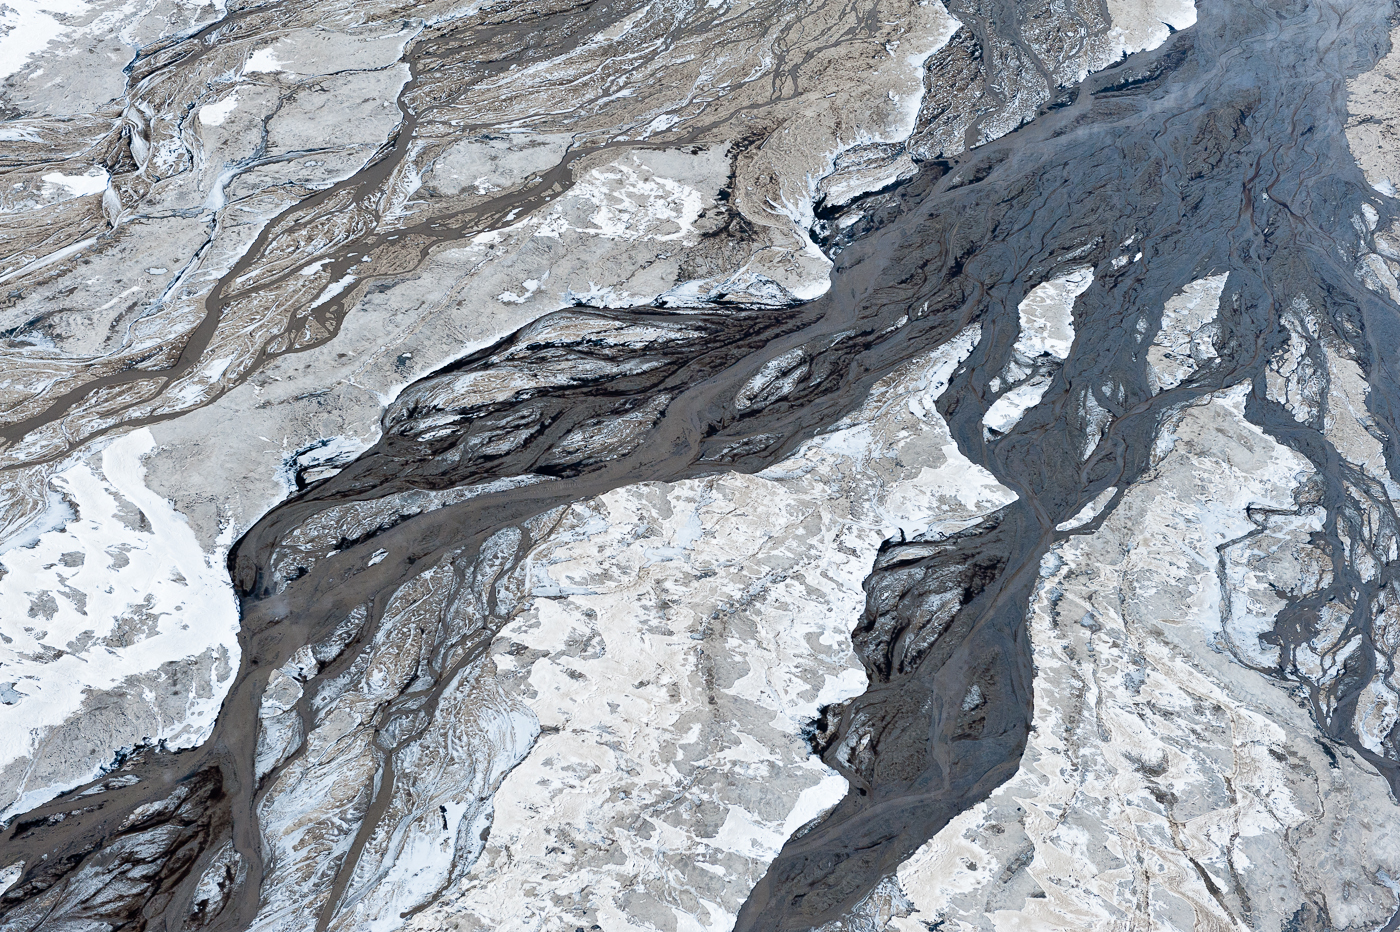 Even in the extreme cold of the winter, the toxic tailings ponds do not freeze. On one particularly cold morning, the partially frozen tailings, sand, liquid tailings and oil residue, combined to produce abstractions that reminded me of a Jackson Pollock canvas.